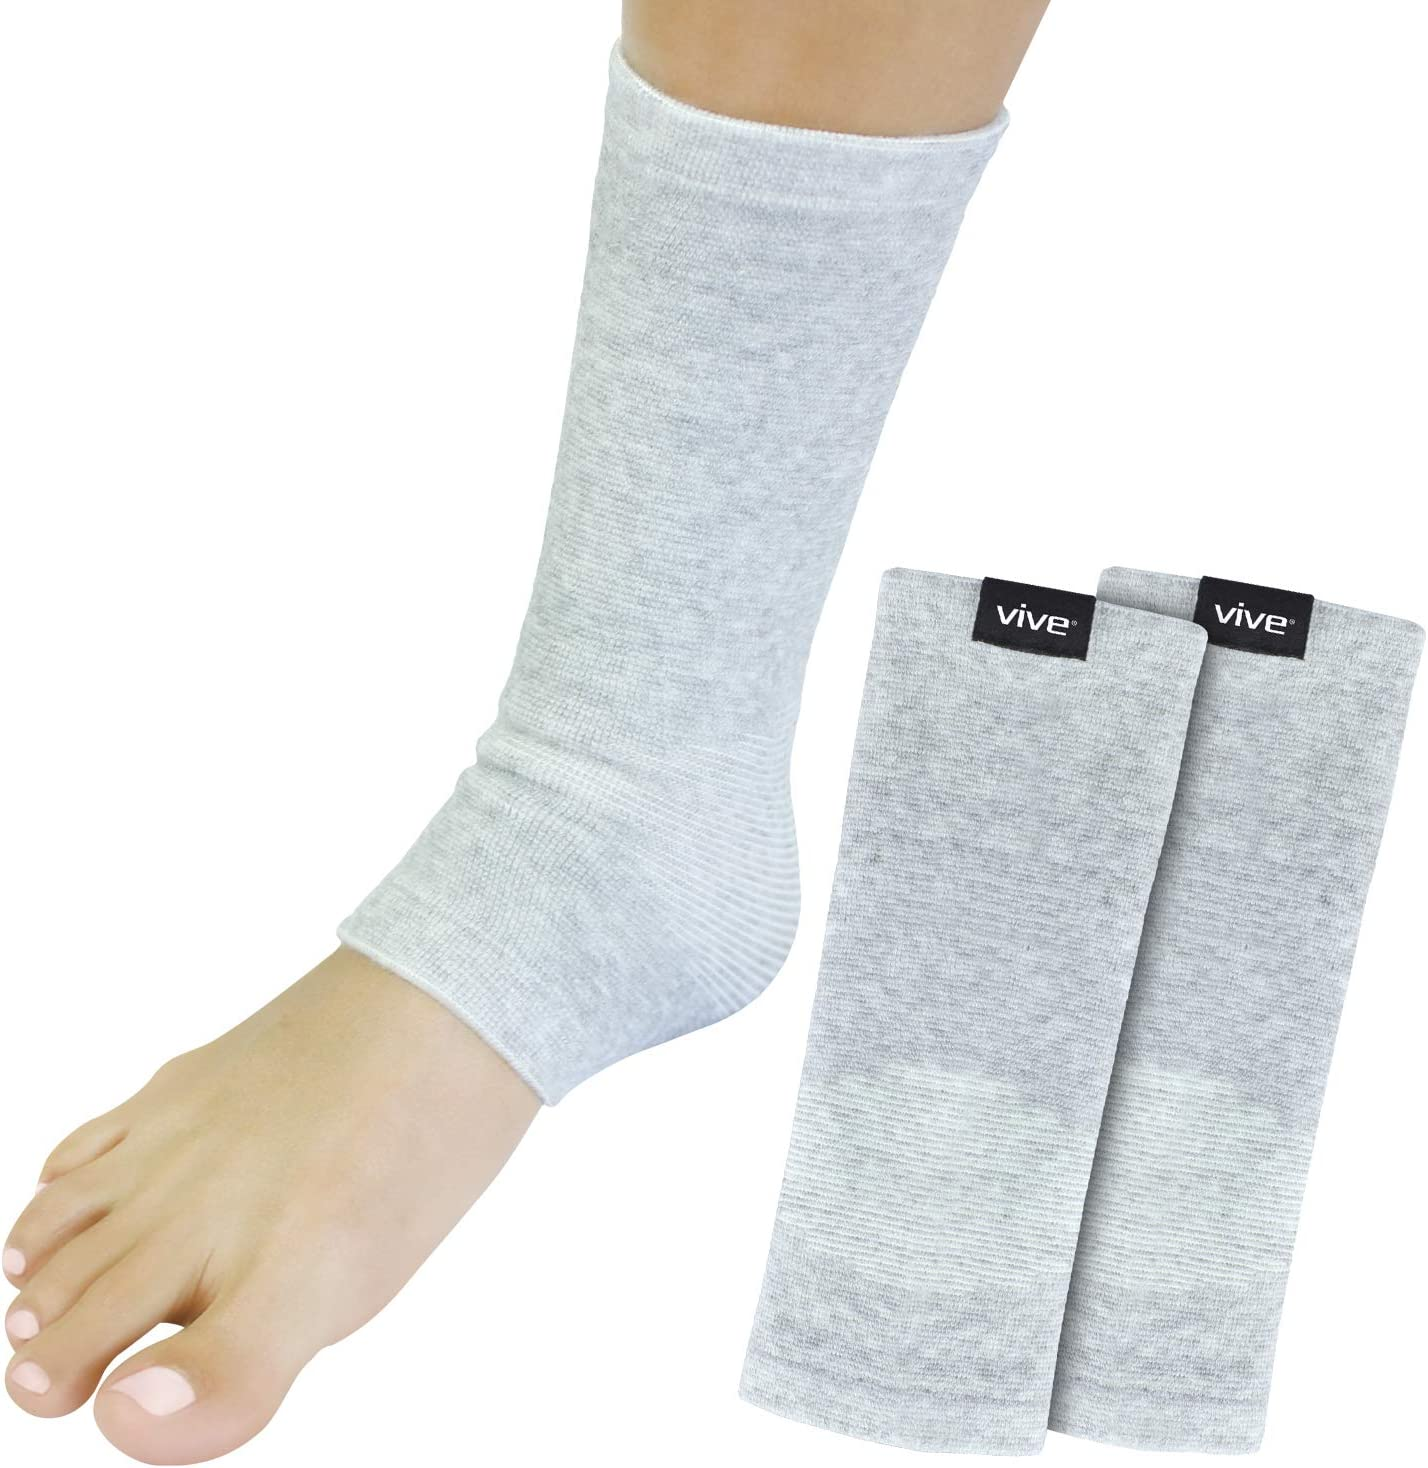 Vive Ankle Compression